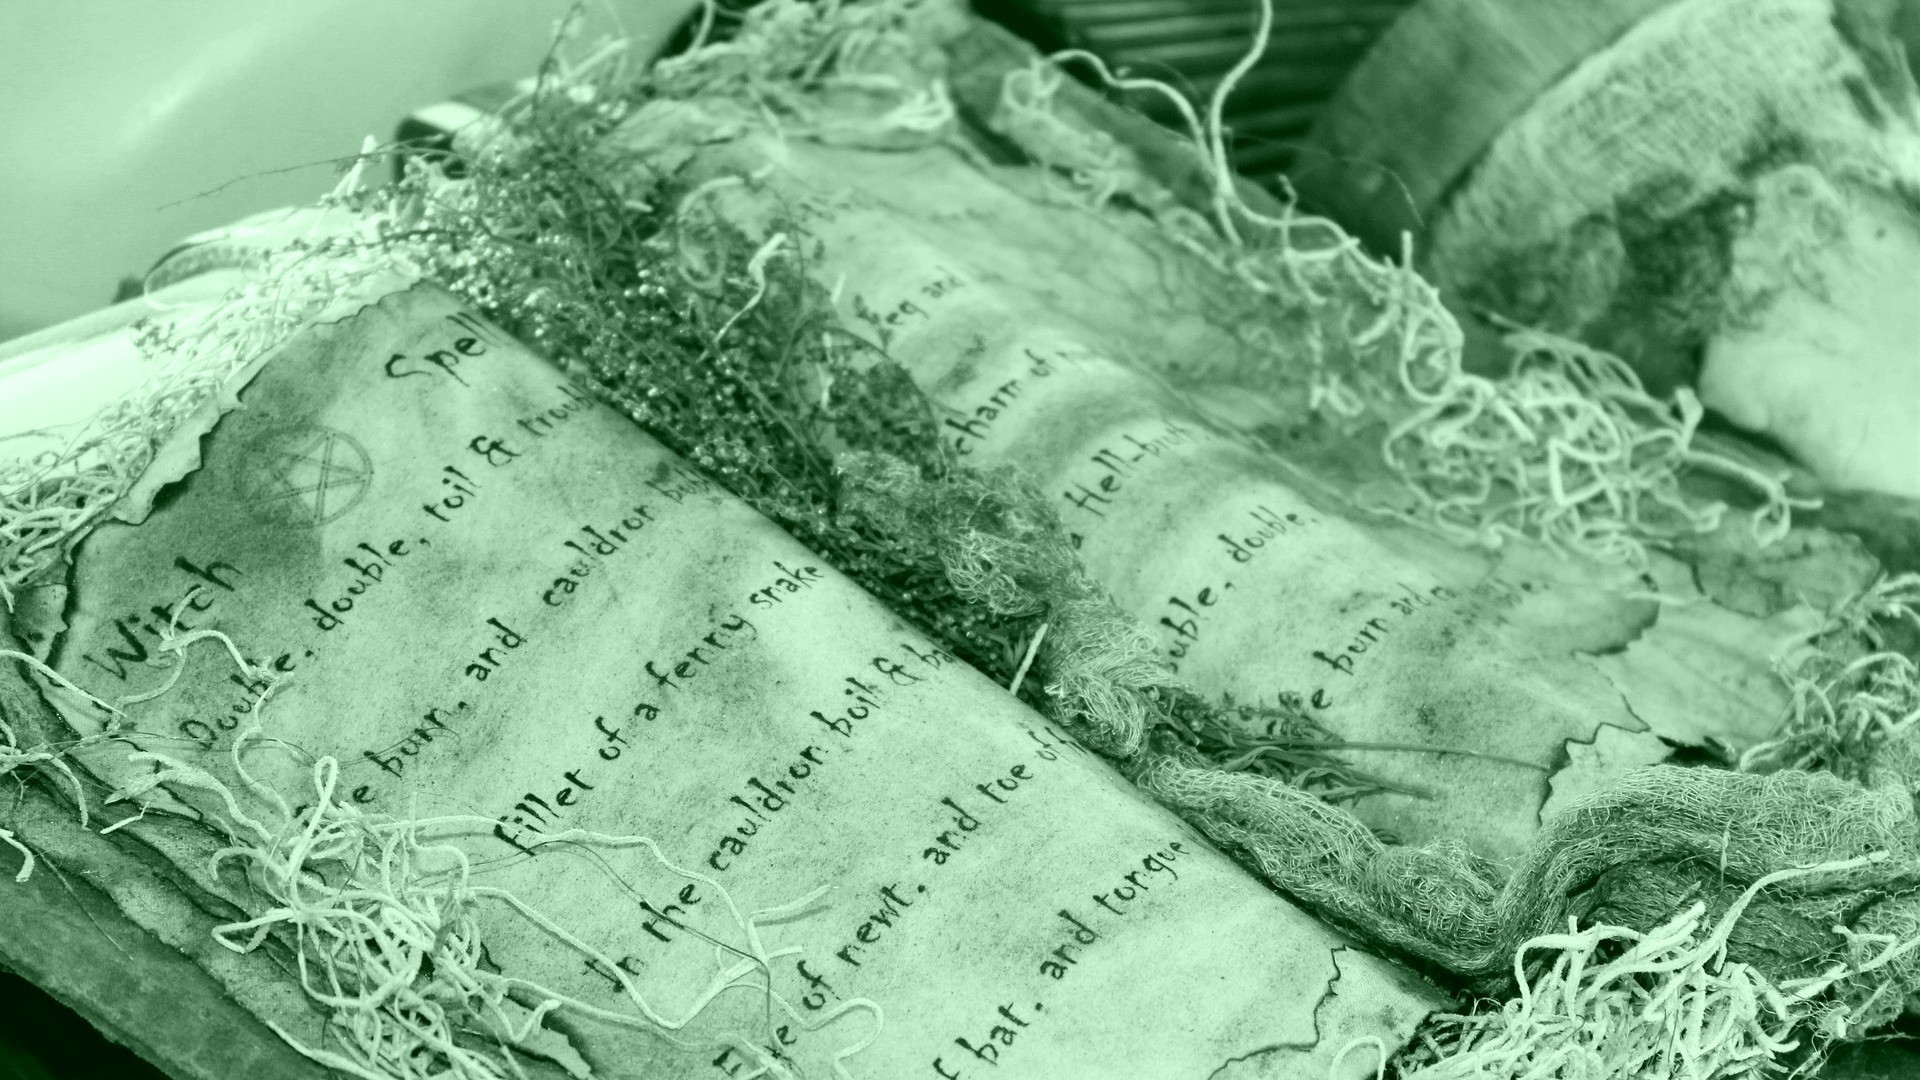 Book of Shadows of the Green Witches Coven. An online Coven of Witches sharing tips on Witchcraft and casting Spells that work with harm to none!